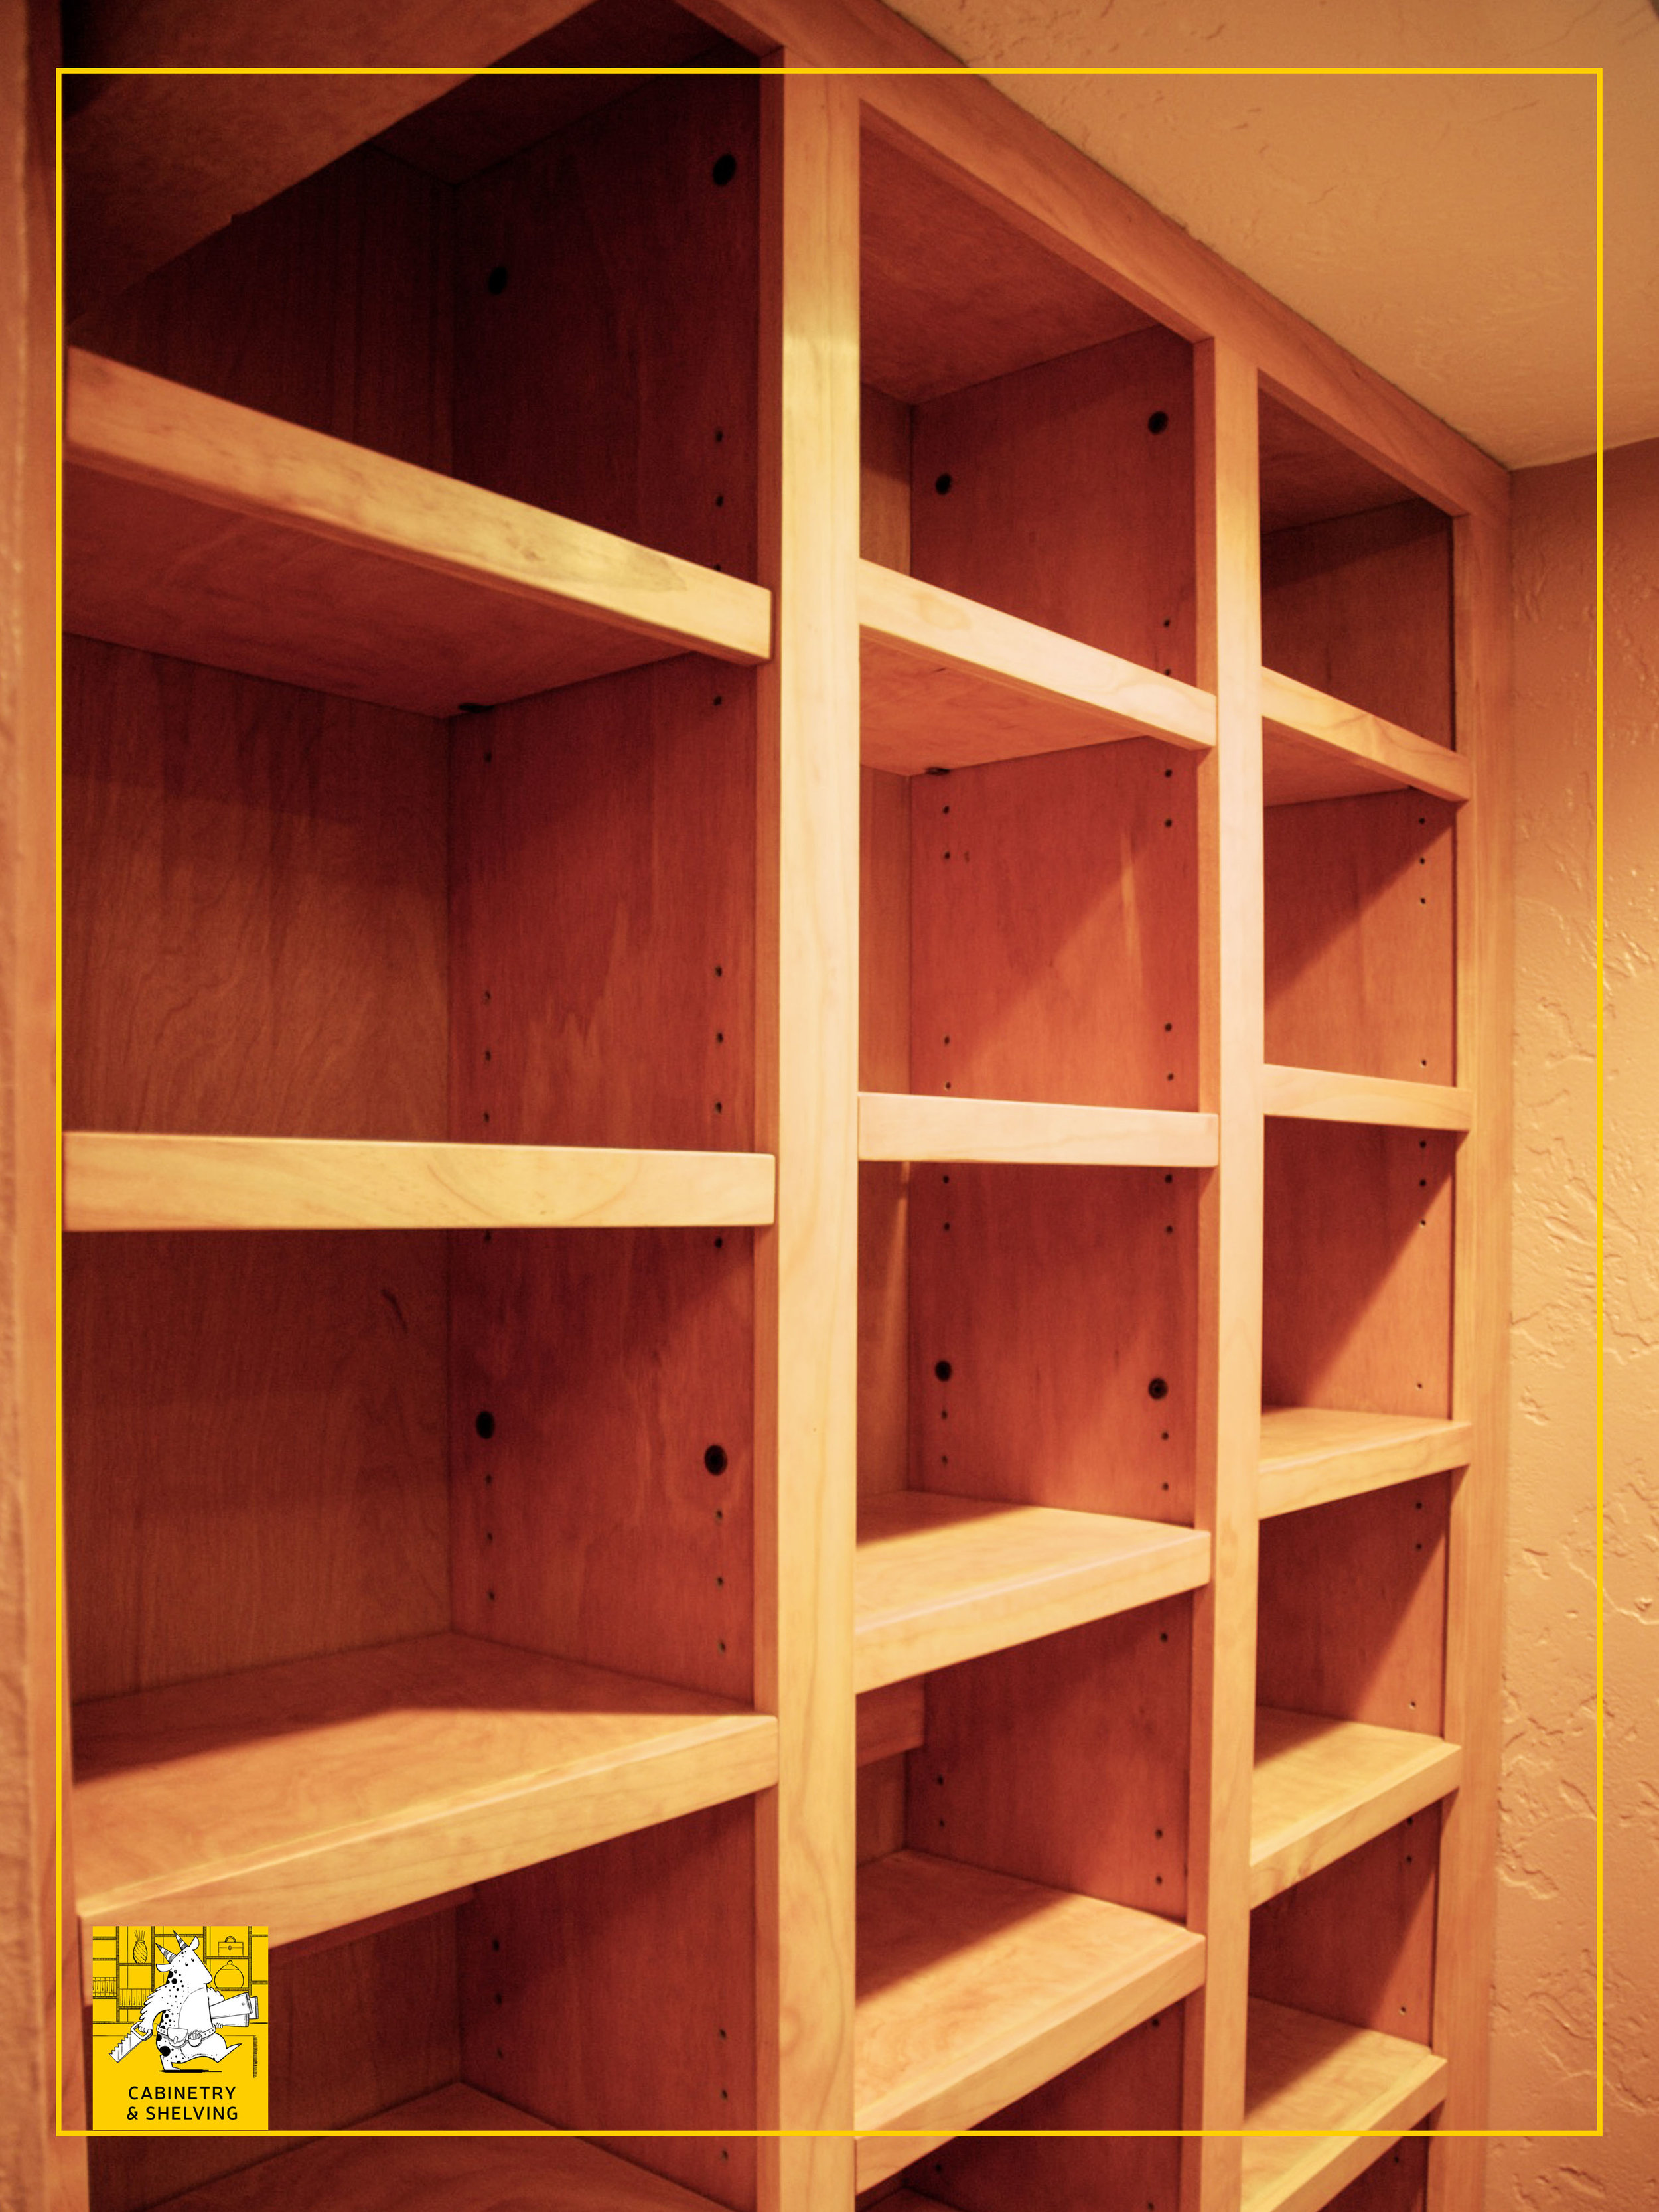 cabinetry 2 after 2.jpg